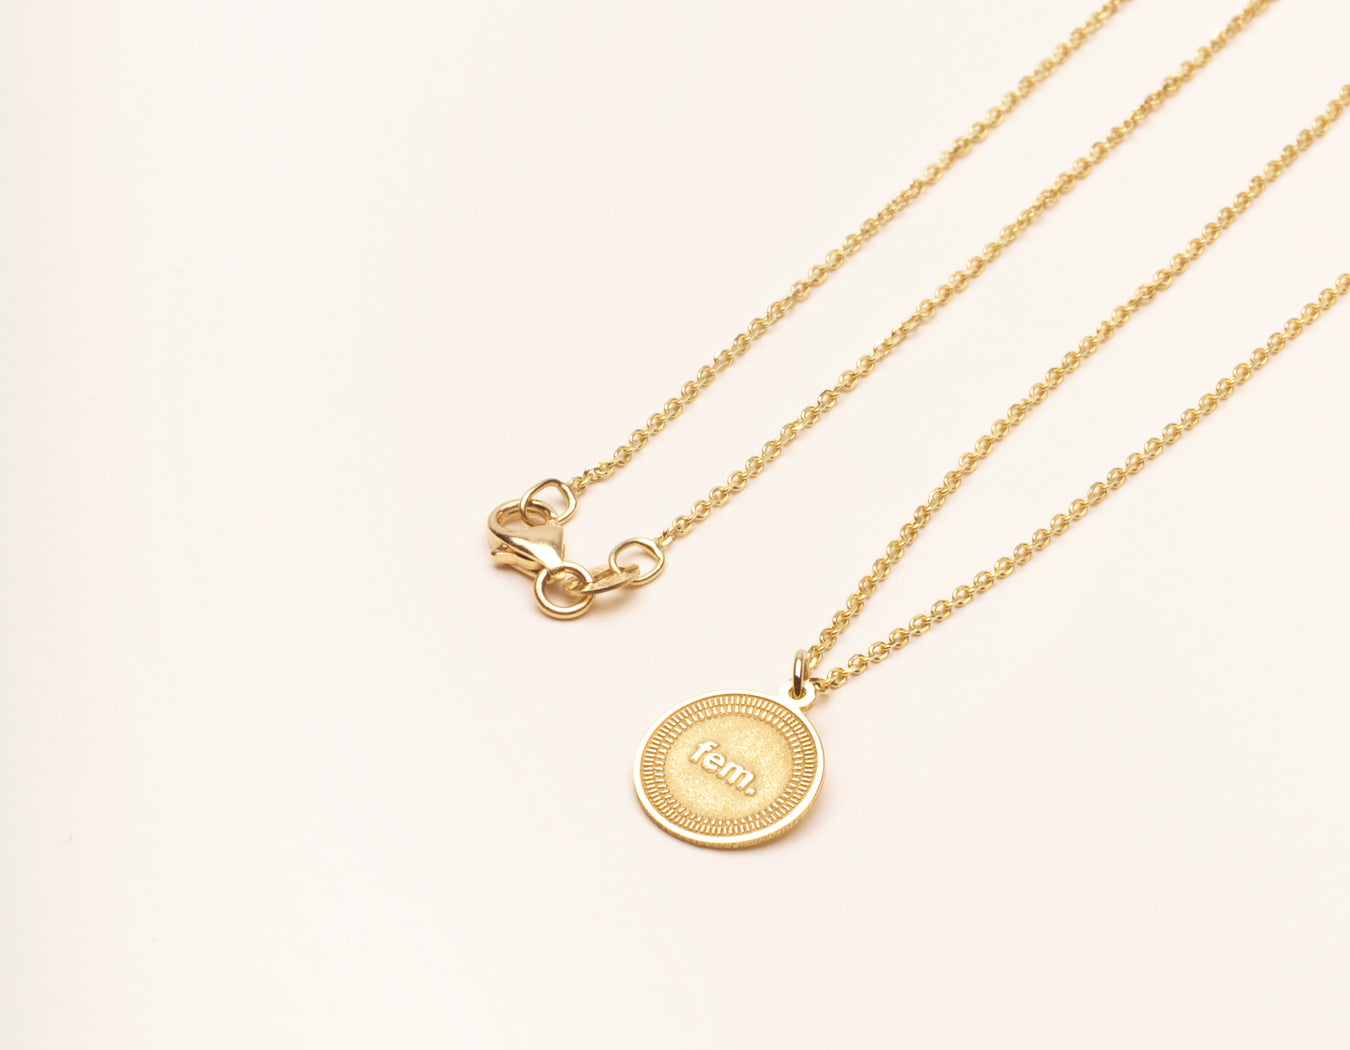 minimalist feminism 14k yellow gold Fem. Necklace circle pendant on thin chain with lobster clasp by Vrai and Oro